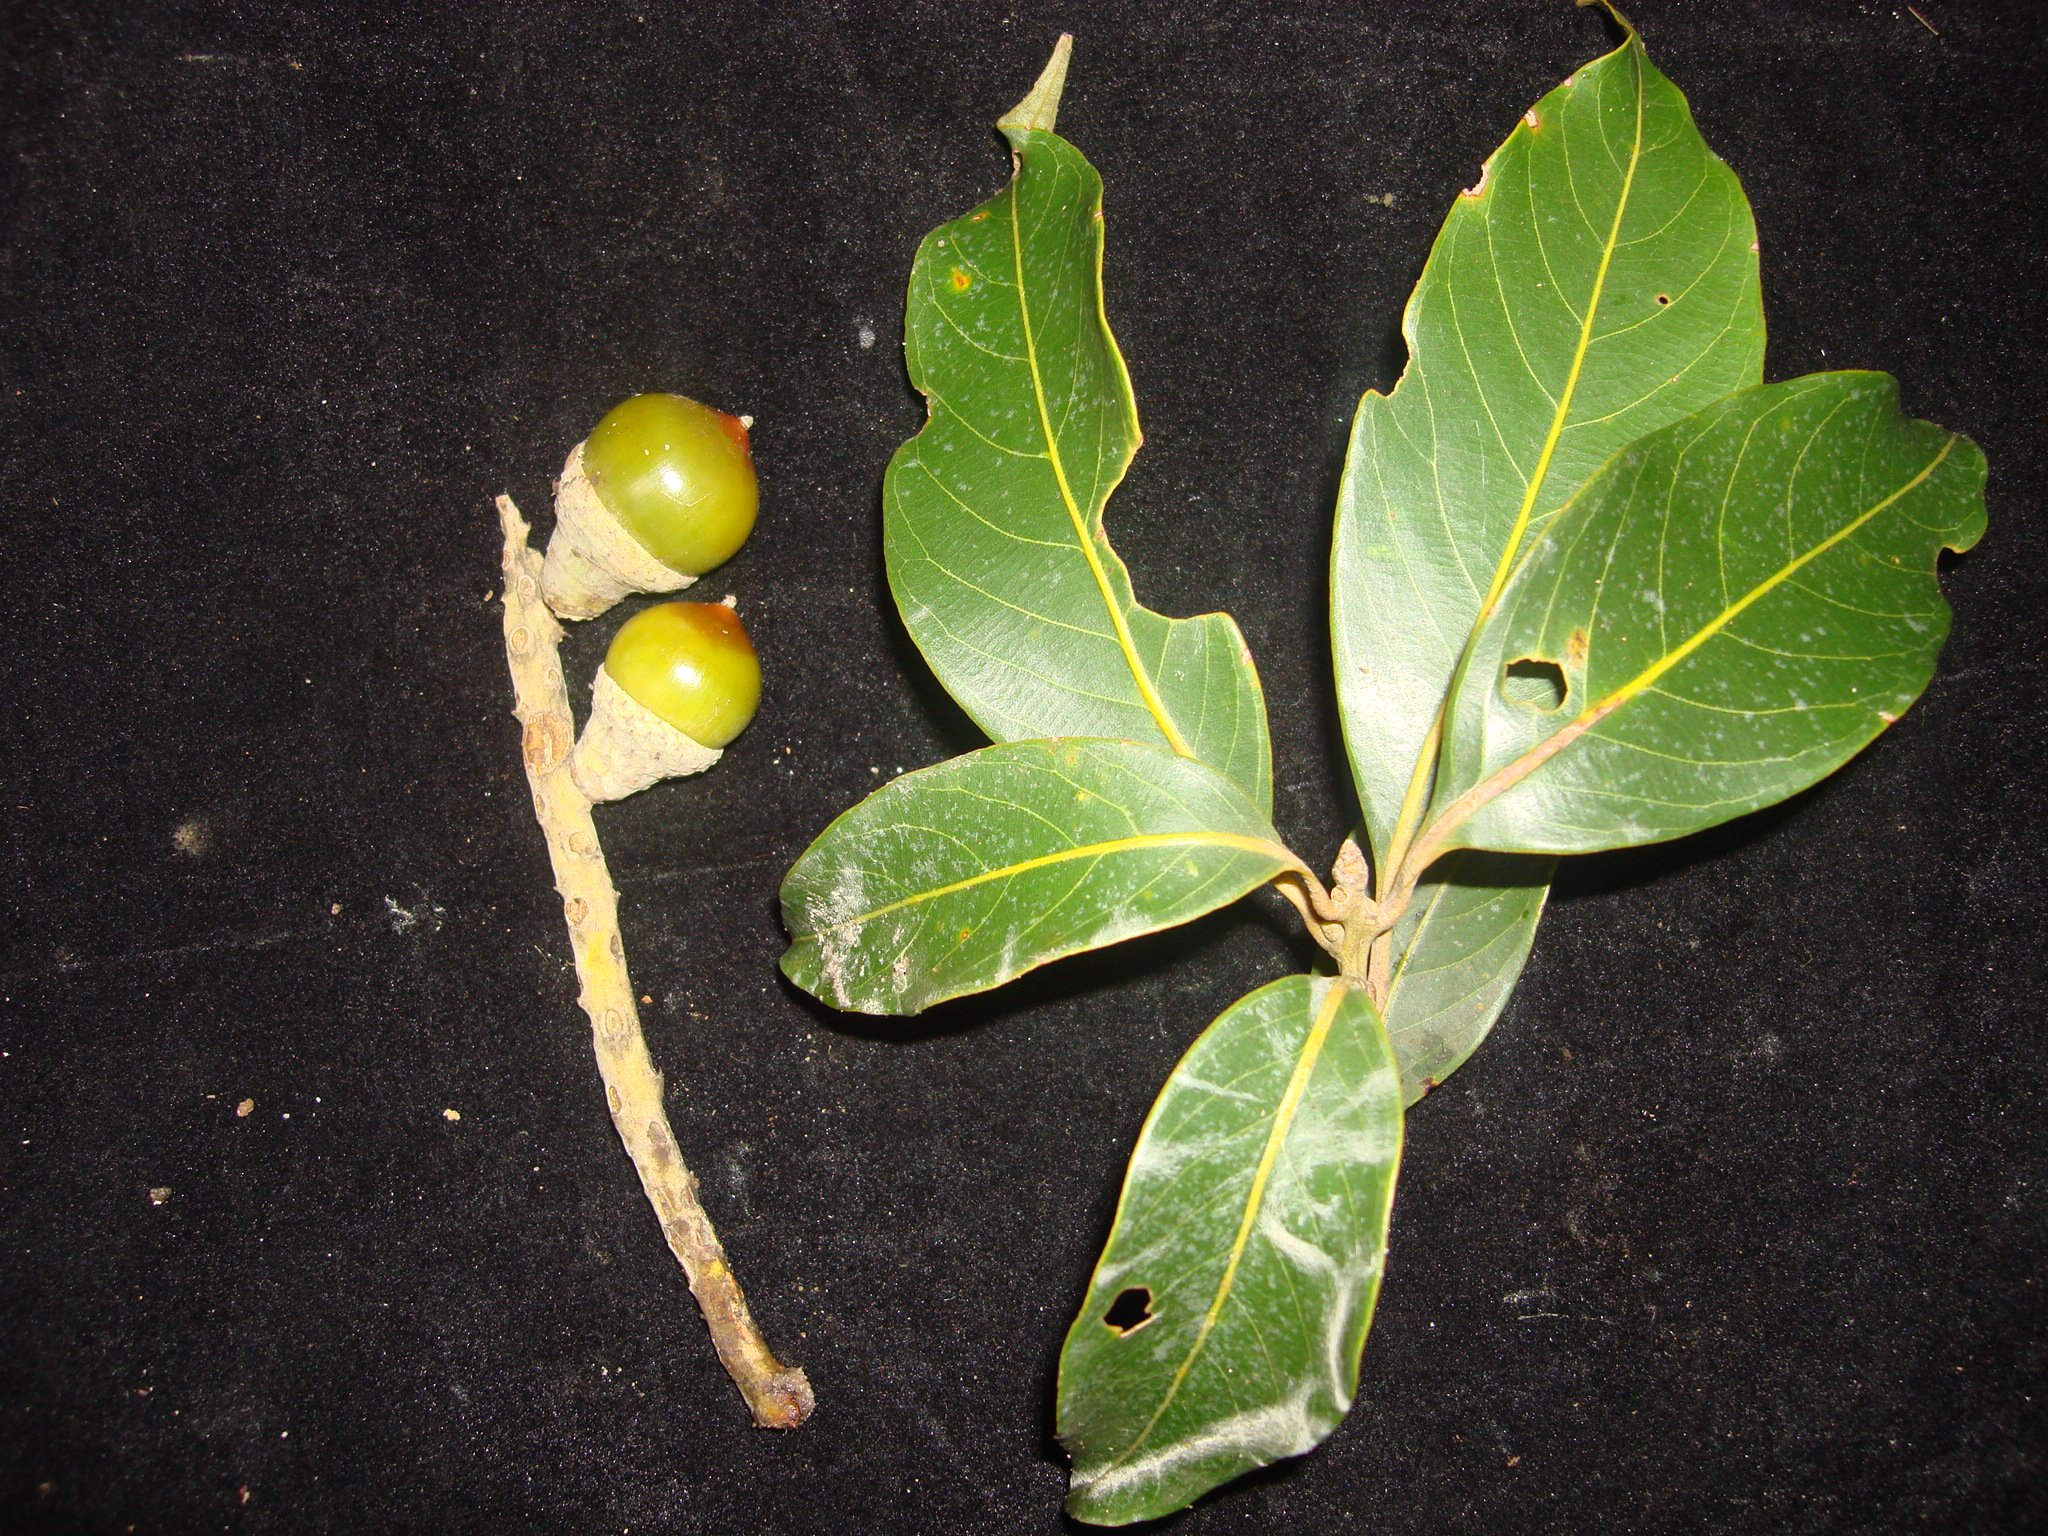 Lithocarpus vuquangensis (Fagaceae), a new species fromVu Quang National Park, Vietnam